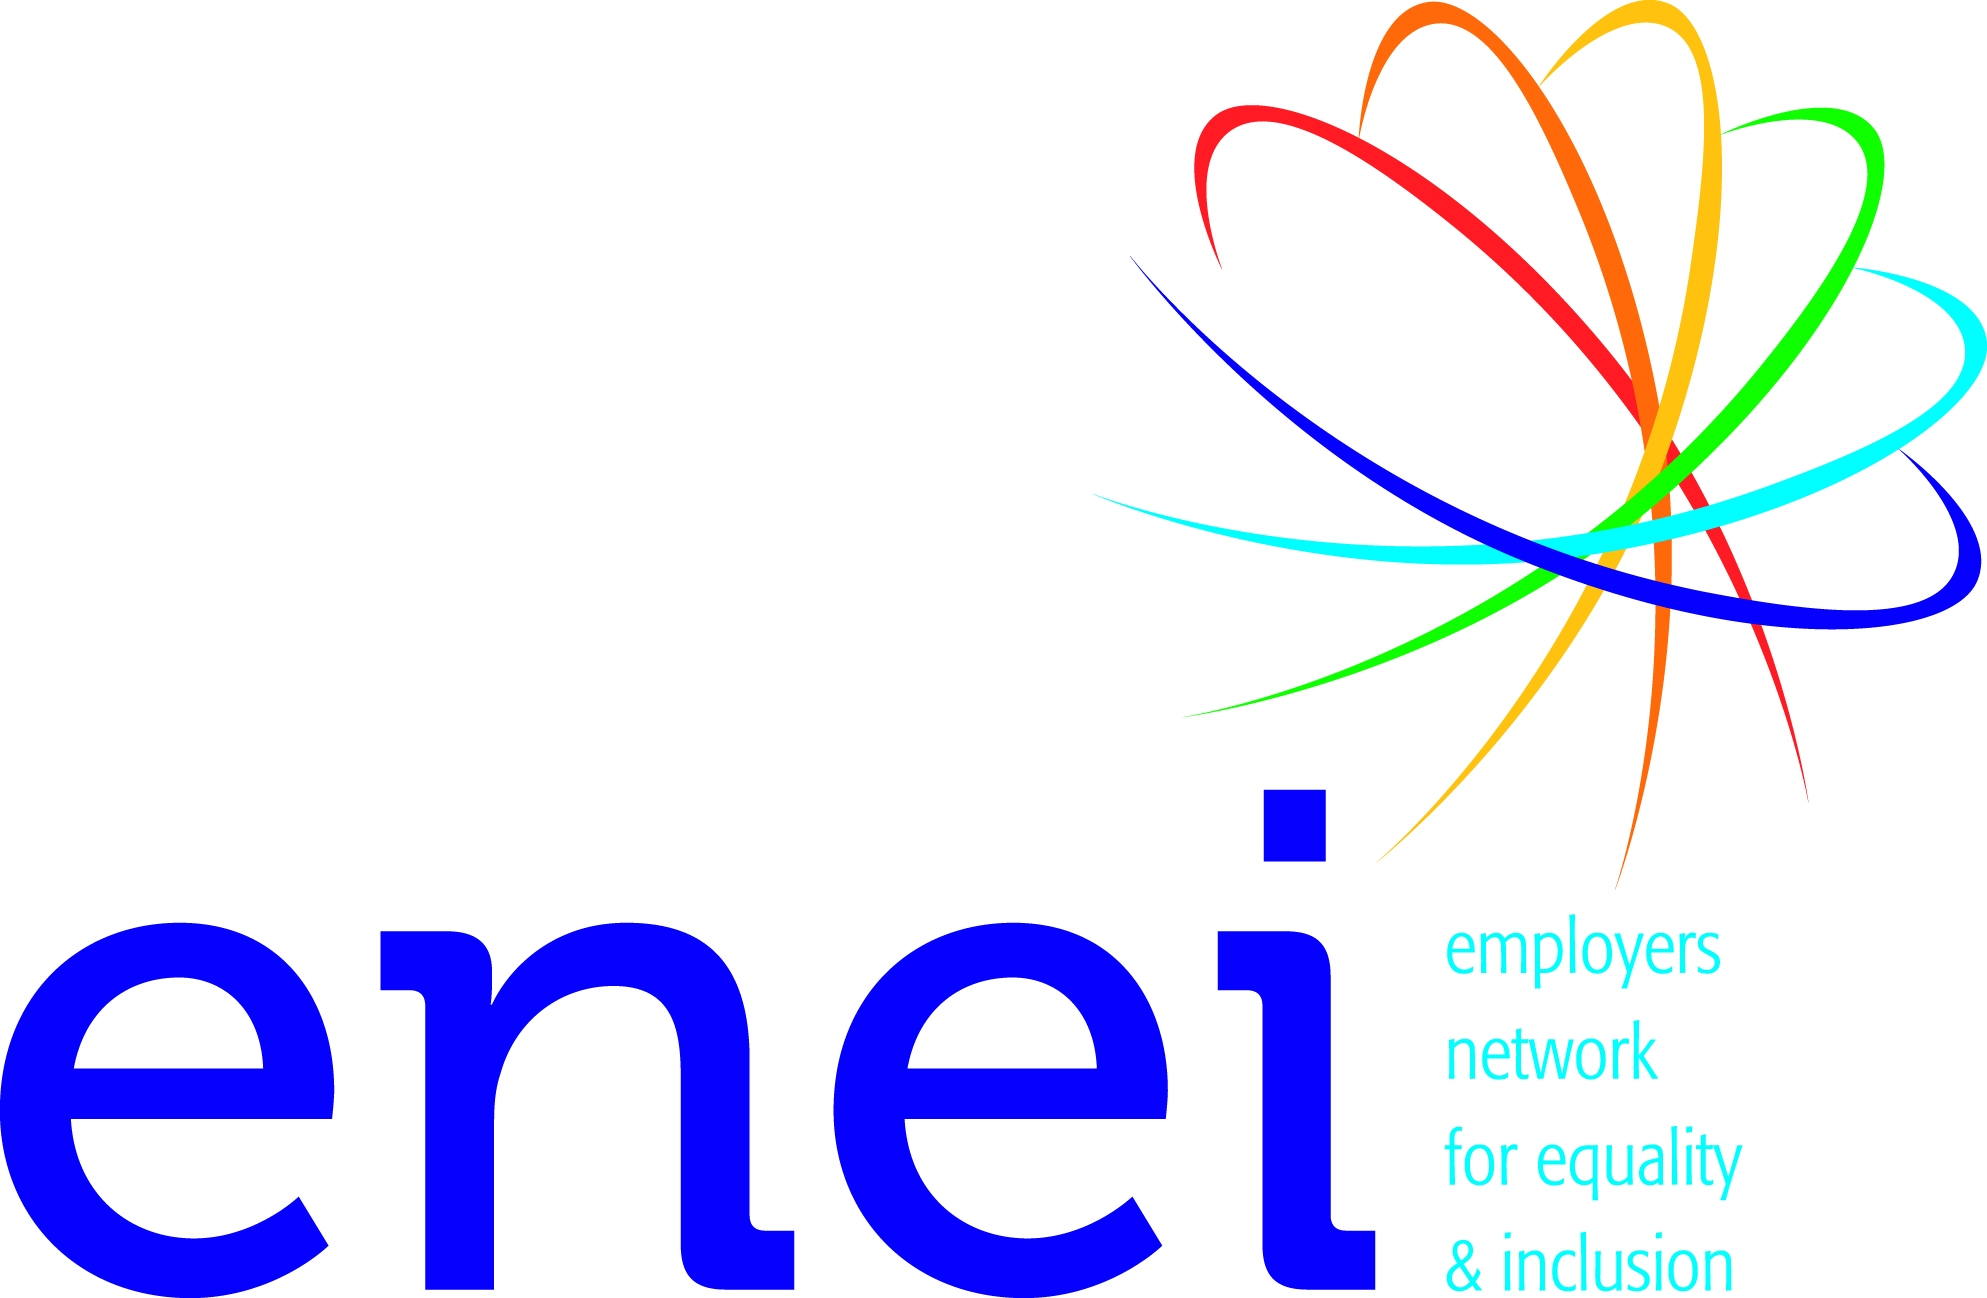 Employers Network for Equality Inclusion